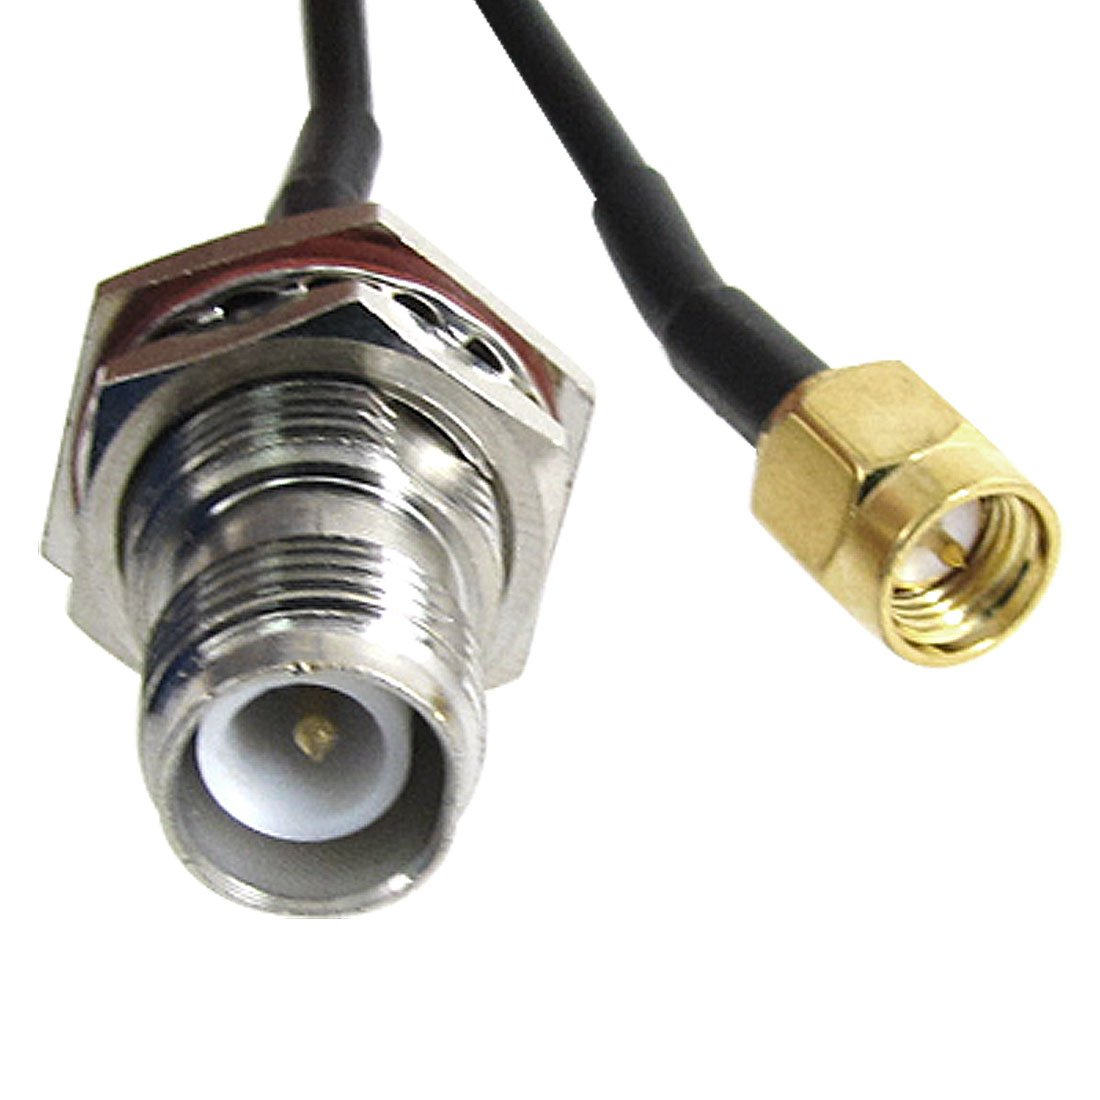 Sunny Sma Male To Rp Tnc Female Adapter Connector Rf